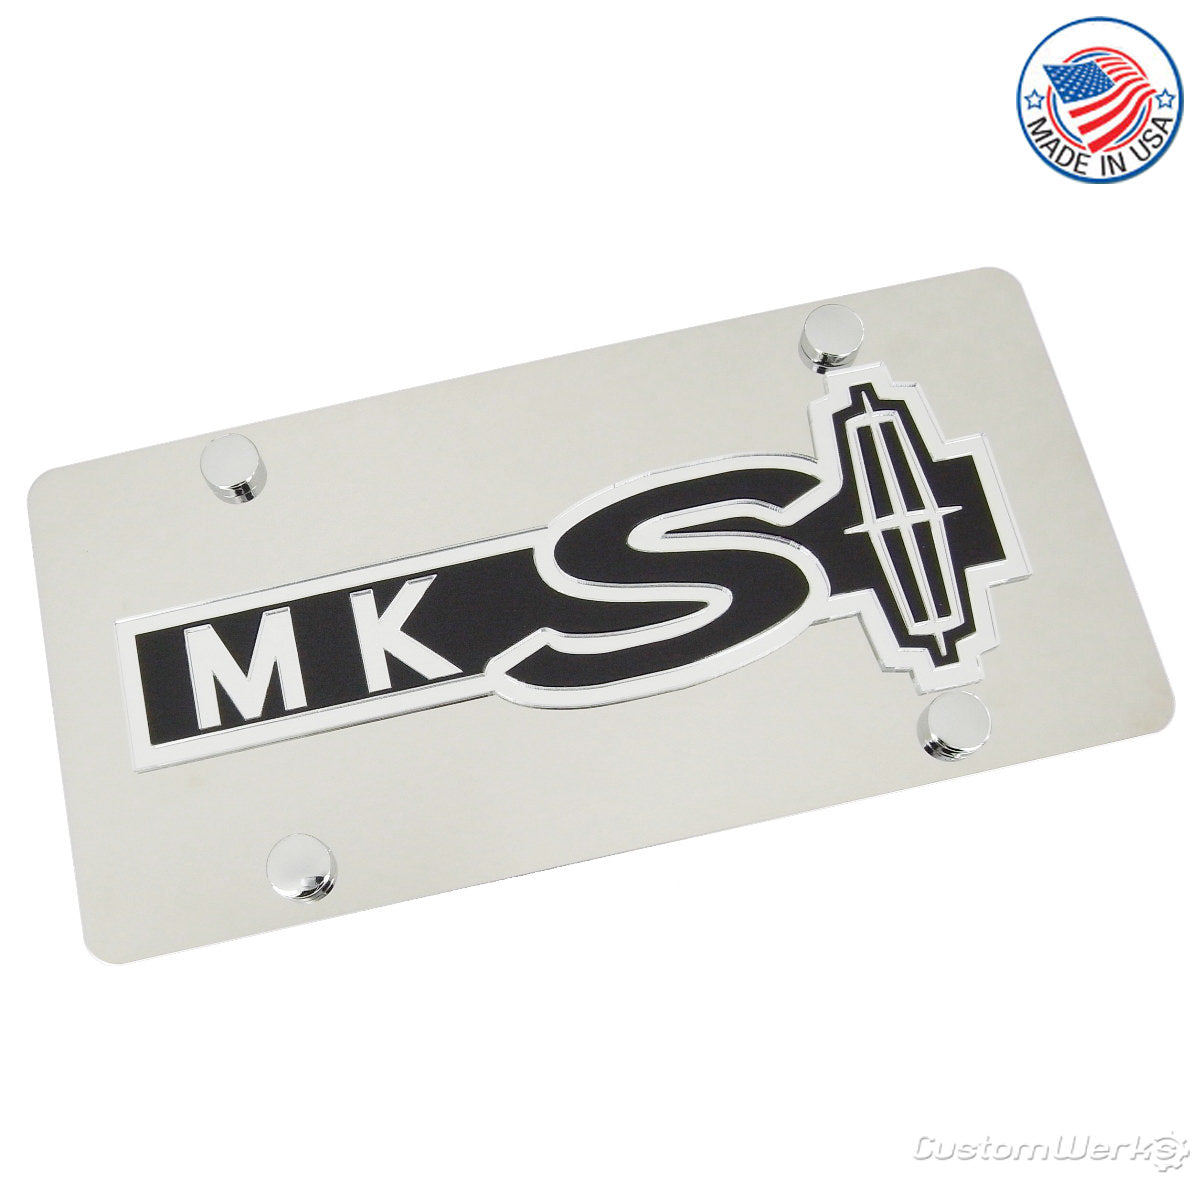 Lincoln Dual Logo MKS License Plate (Chrome) - Custom Werks